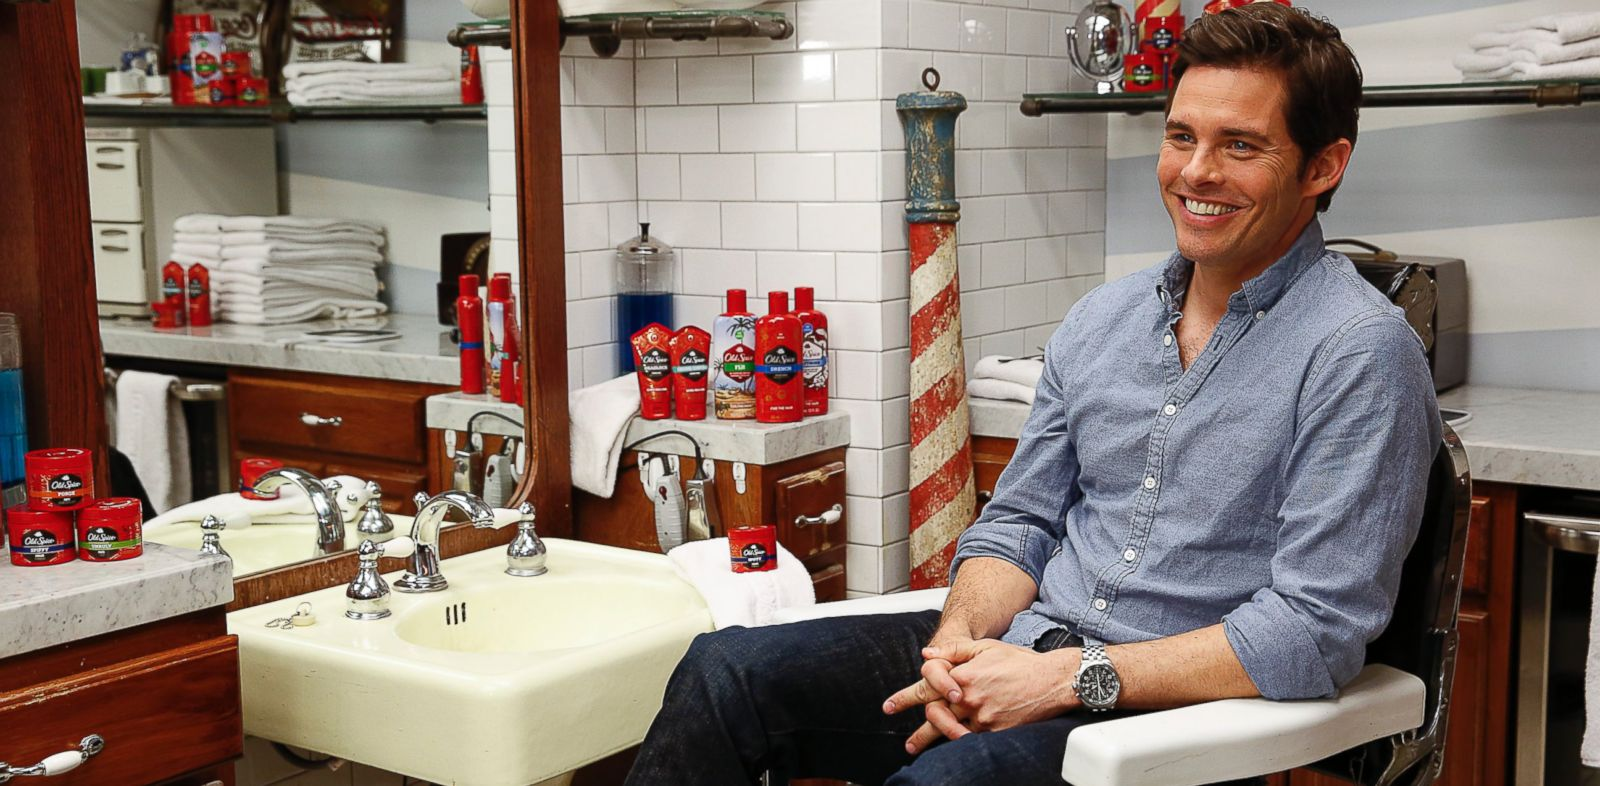 PHOTO: James Marsden appears at Sharps Barber and Shop at Le Parker Meridien Hotel, Jan. 31, 2014 in New York.